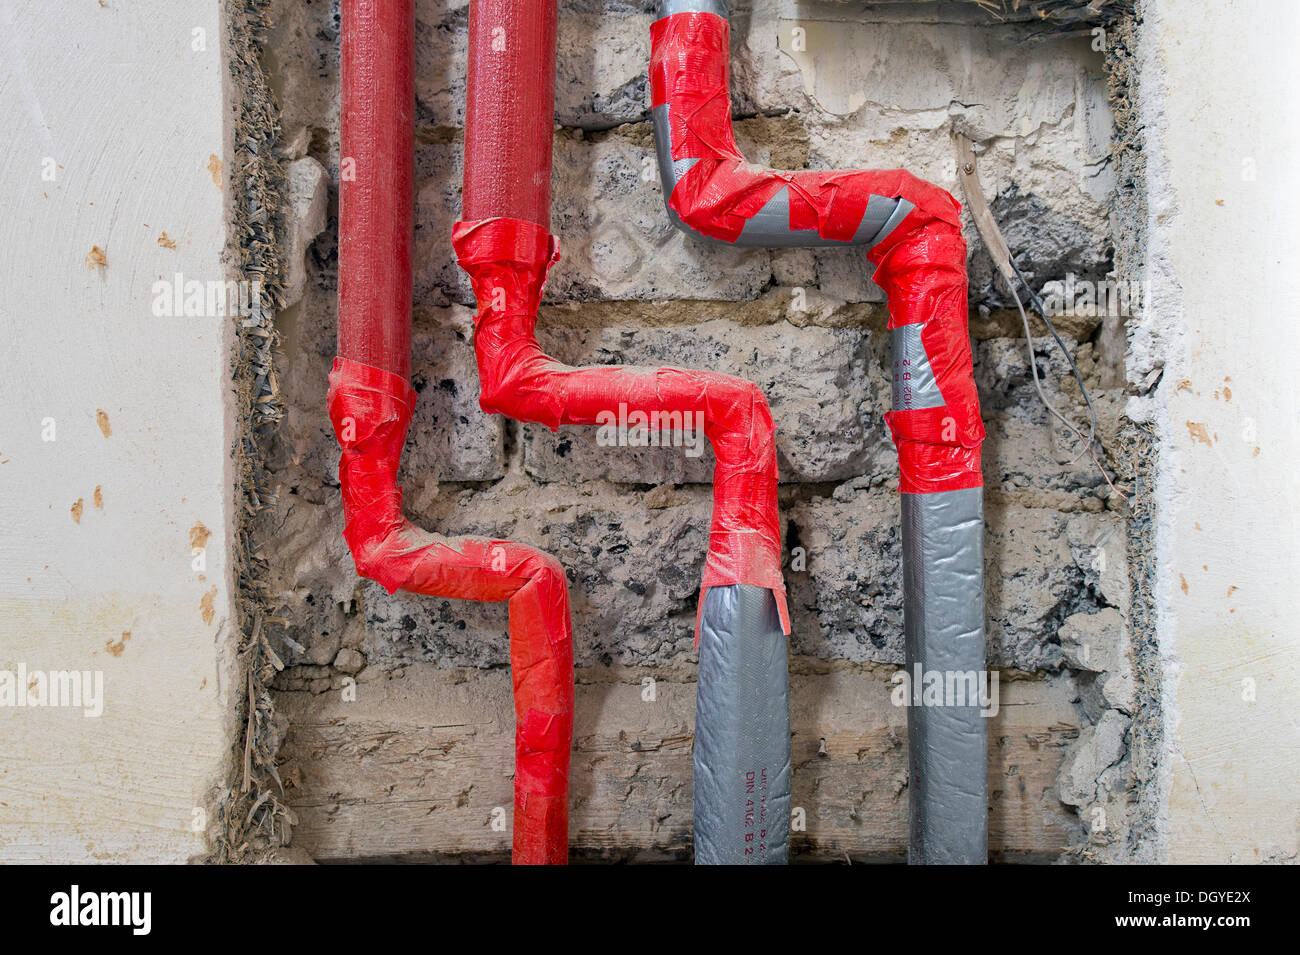 Newly installed heating and water pipes to be flush mounted in an old building, Stuttgart, Baden-Wuerttemberg - Stock Image